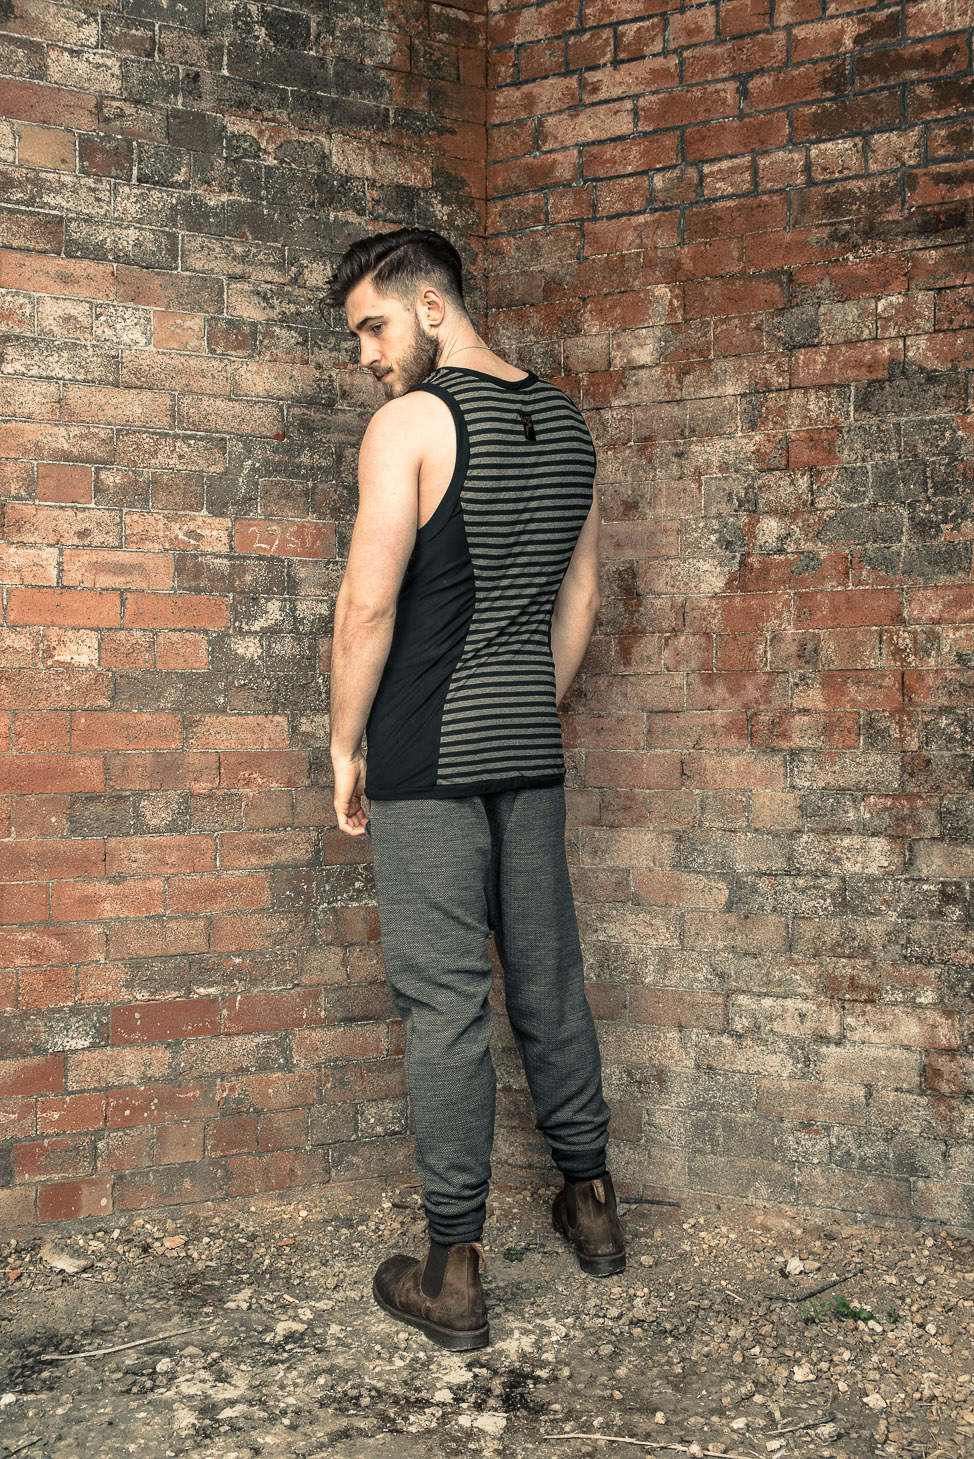 zaramia-ava-zaramiaava-leeds-fashion-designer-ethical-sustainable-tailored-minimalist-stripe-fitted-versatile-drape-grey-tshirt-top-vest-hareem-trousers-black-grey-texture-styling-10